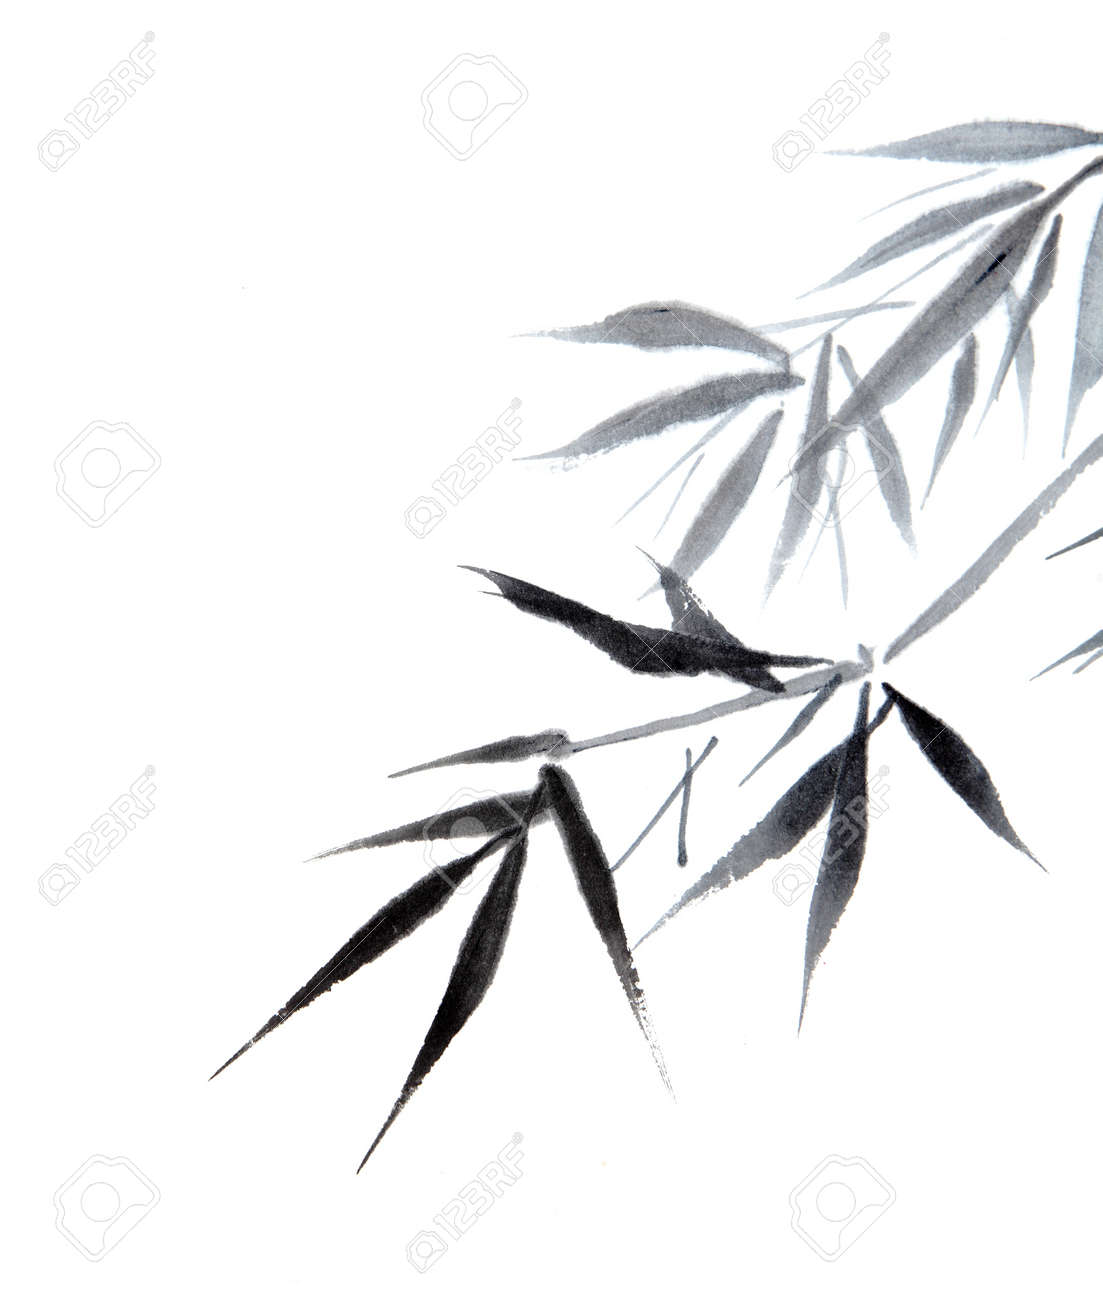 bamboo leaf , traditional chinese calligraphy art isolated on white background. Stock Photo - 20620613